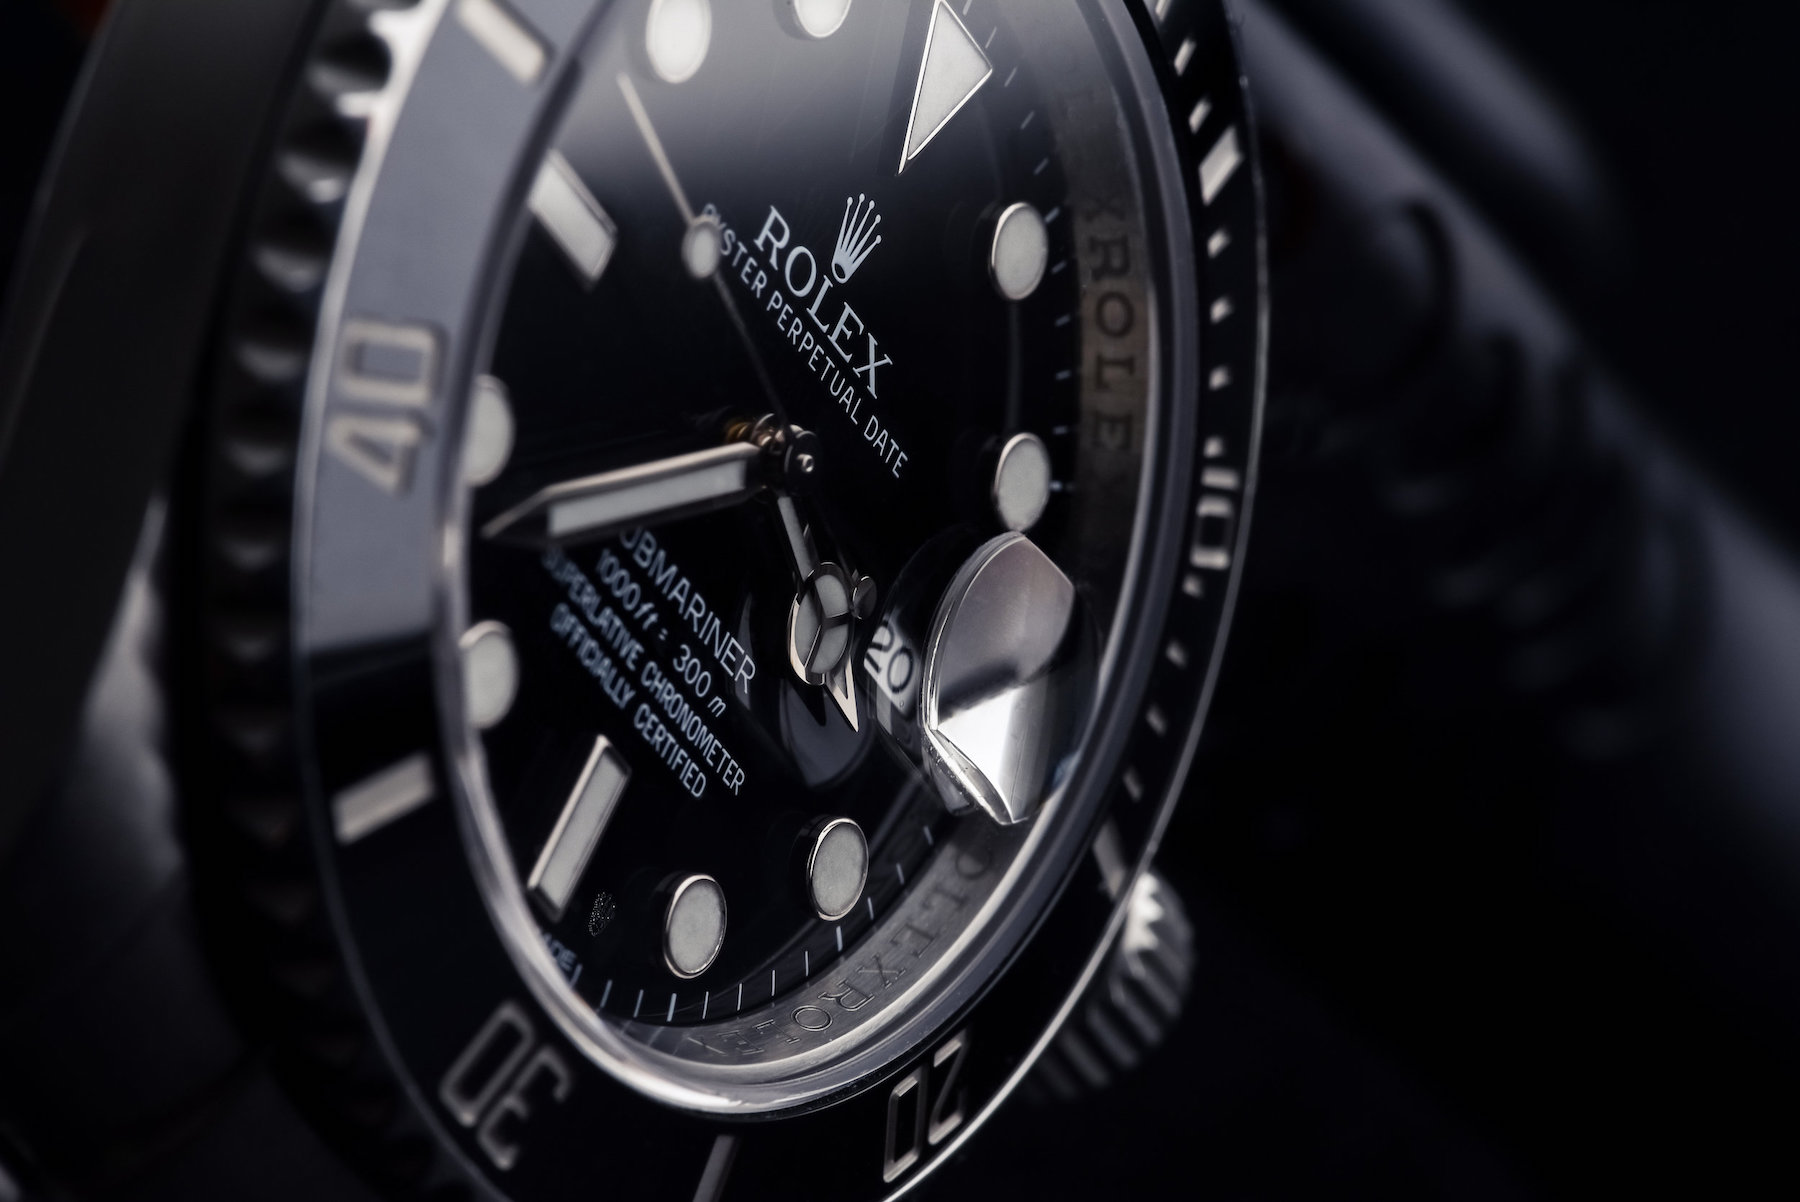 rolex-submariner-close-up-commercial-thomas-drouault-porfolio.jpg